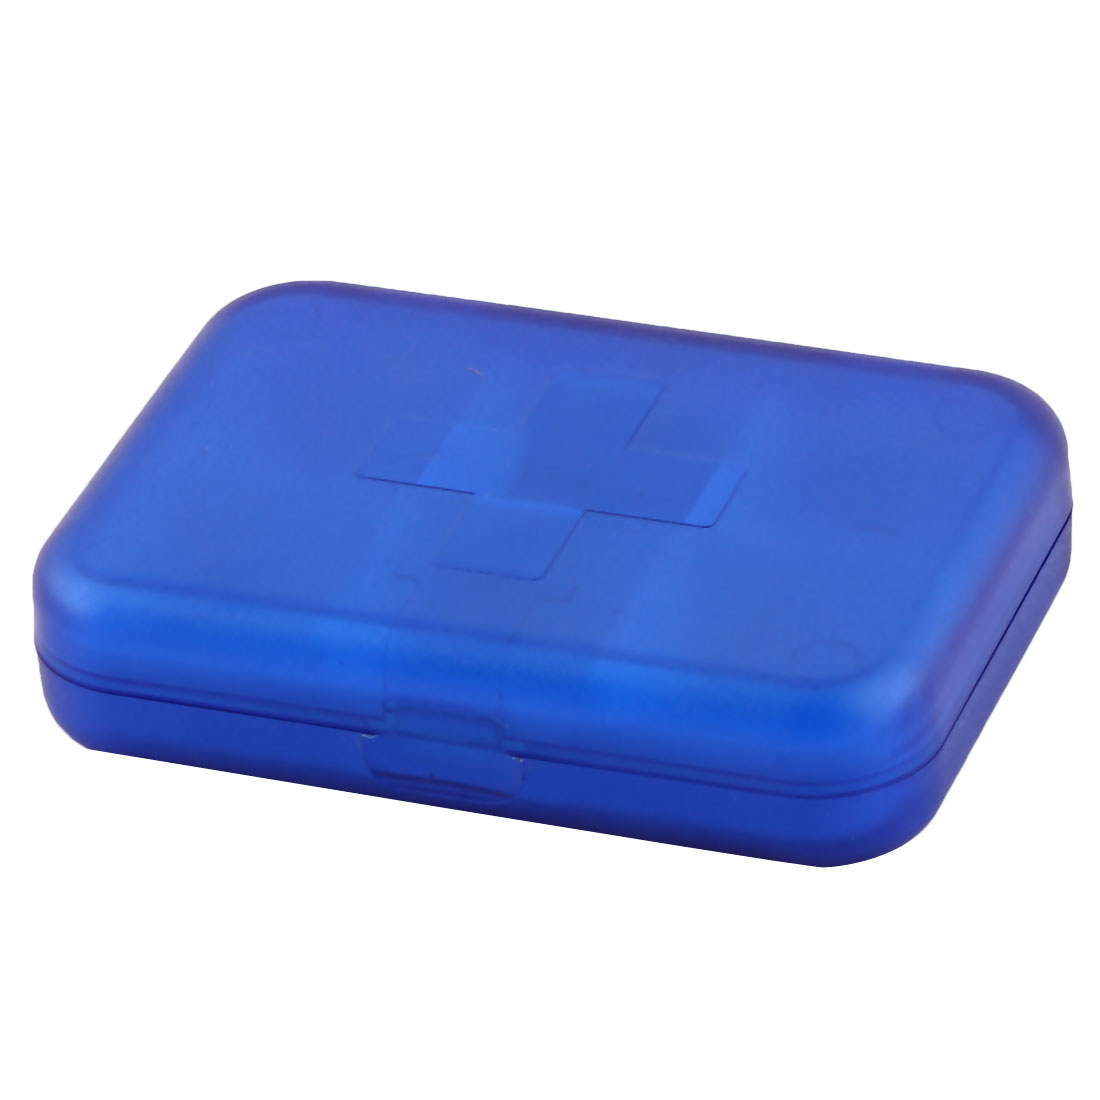 Travel Plastic Square Shaped 6 Compartments Medicinal Pills Box Case Holder Blue